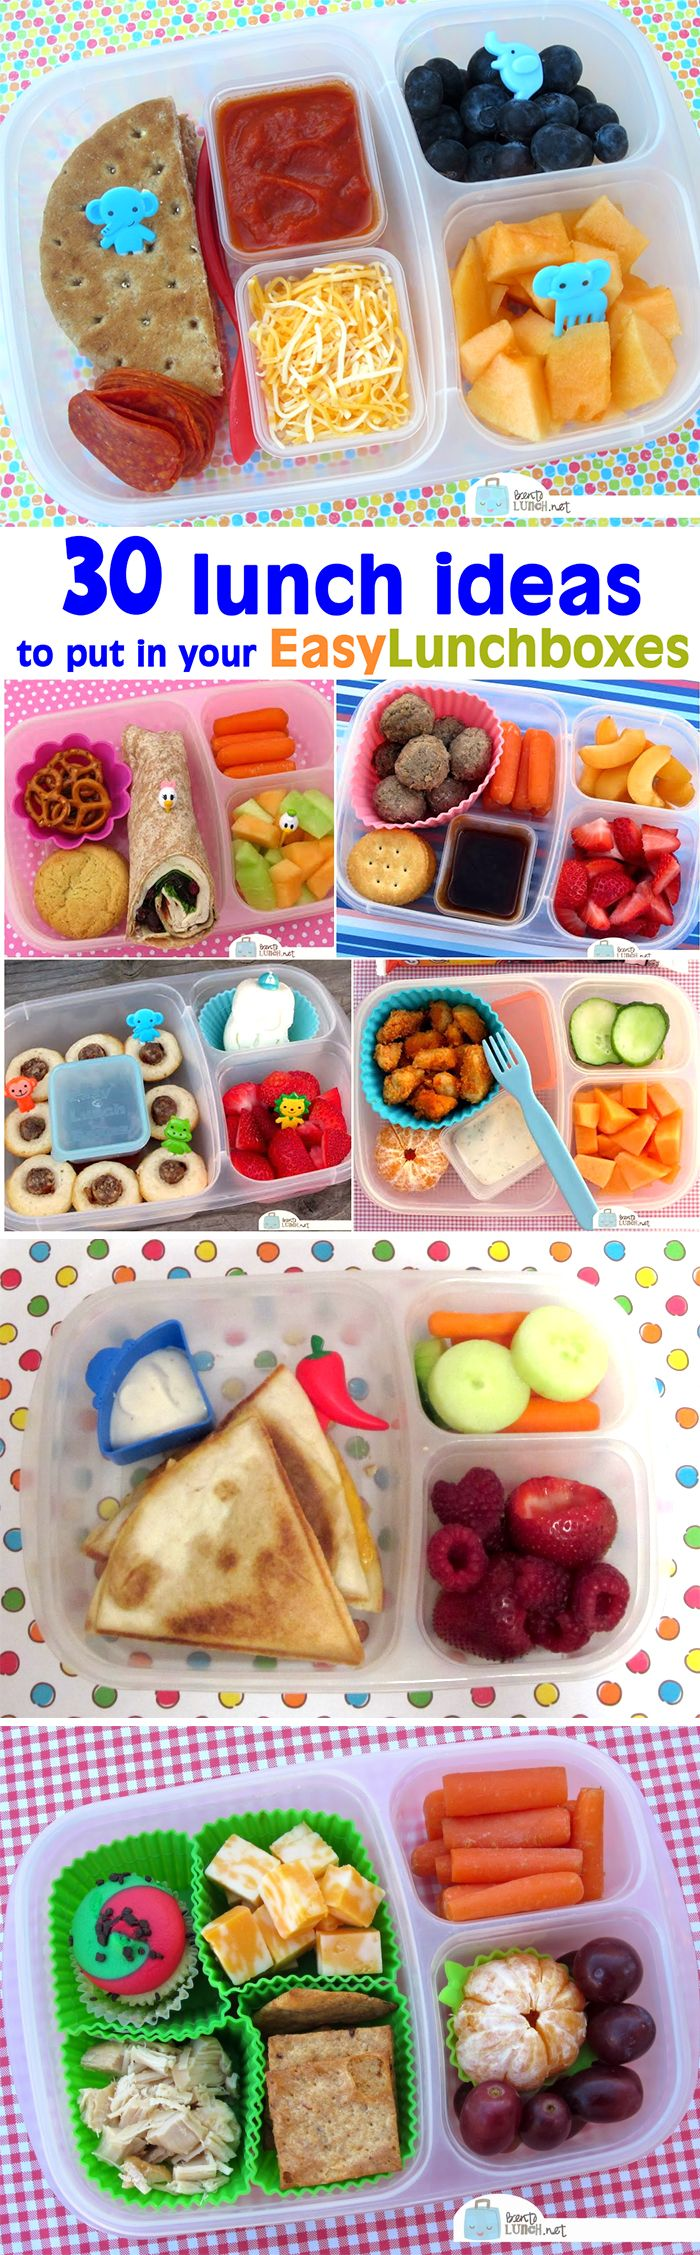 30 packed lunch ideas to put in your @easylunchboxes